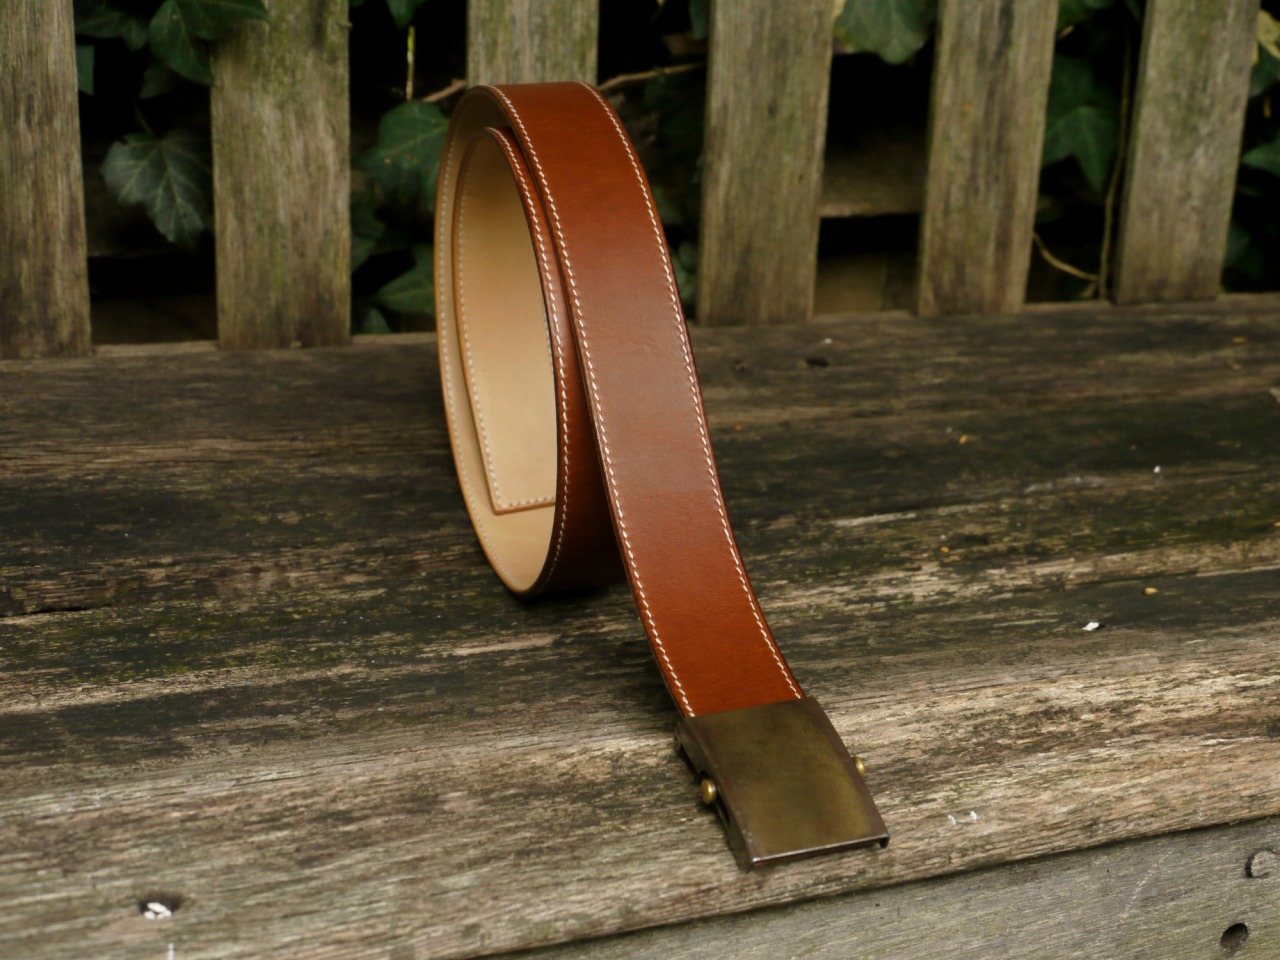 Double sided, bespoke belt, fully handsewn